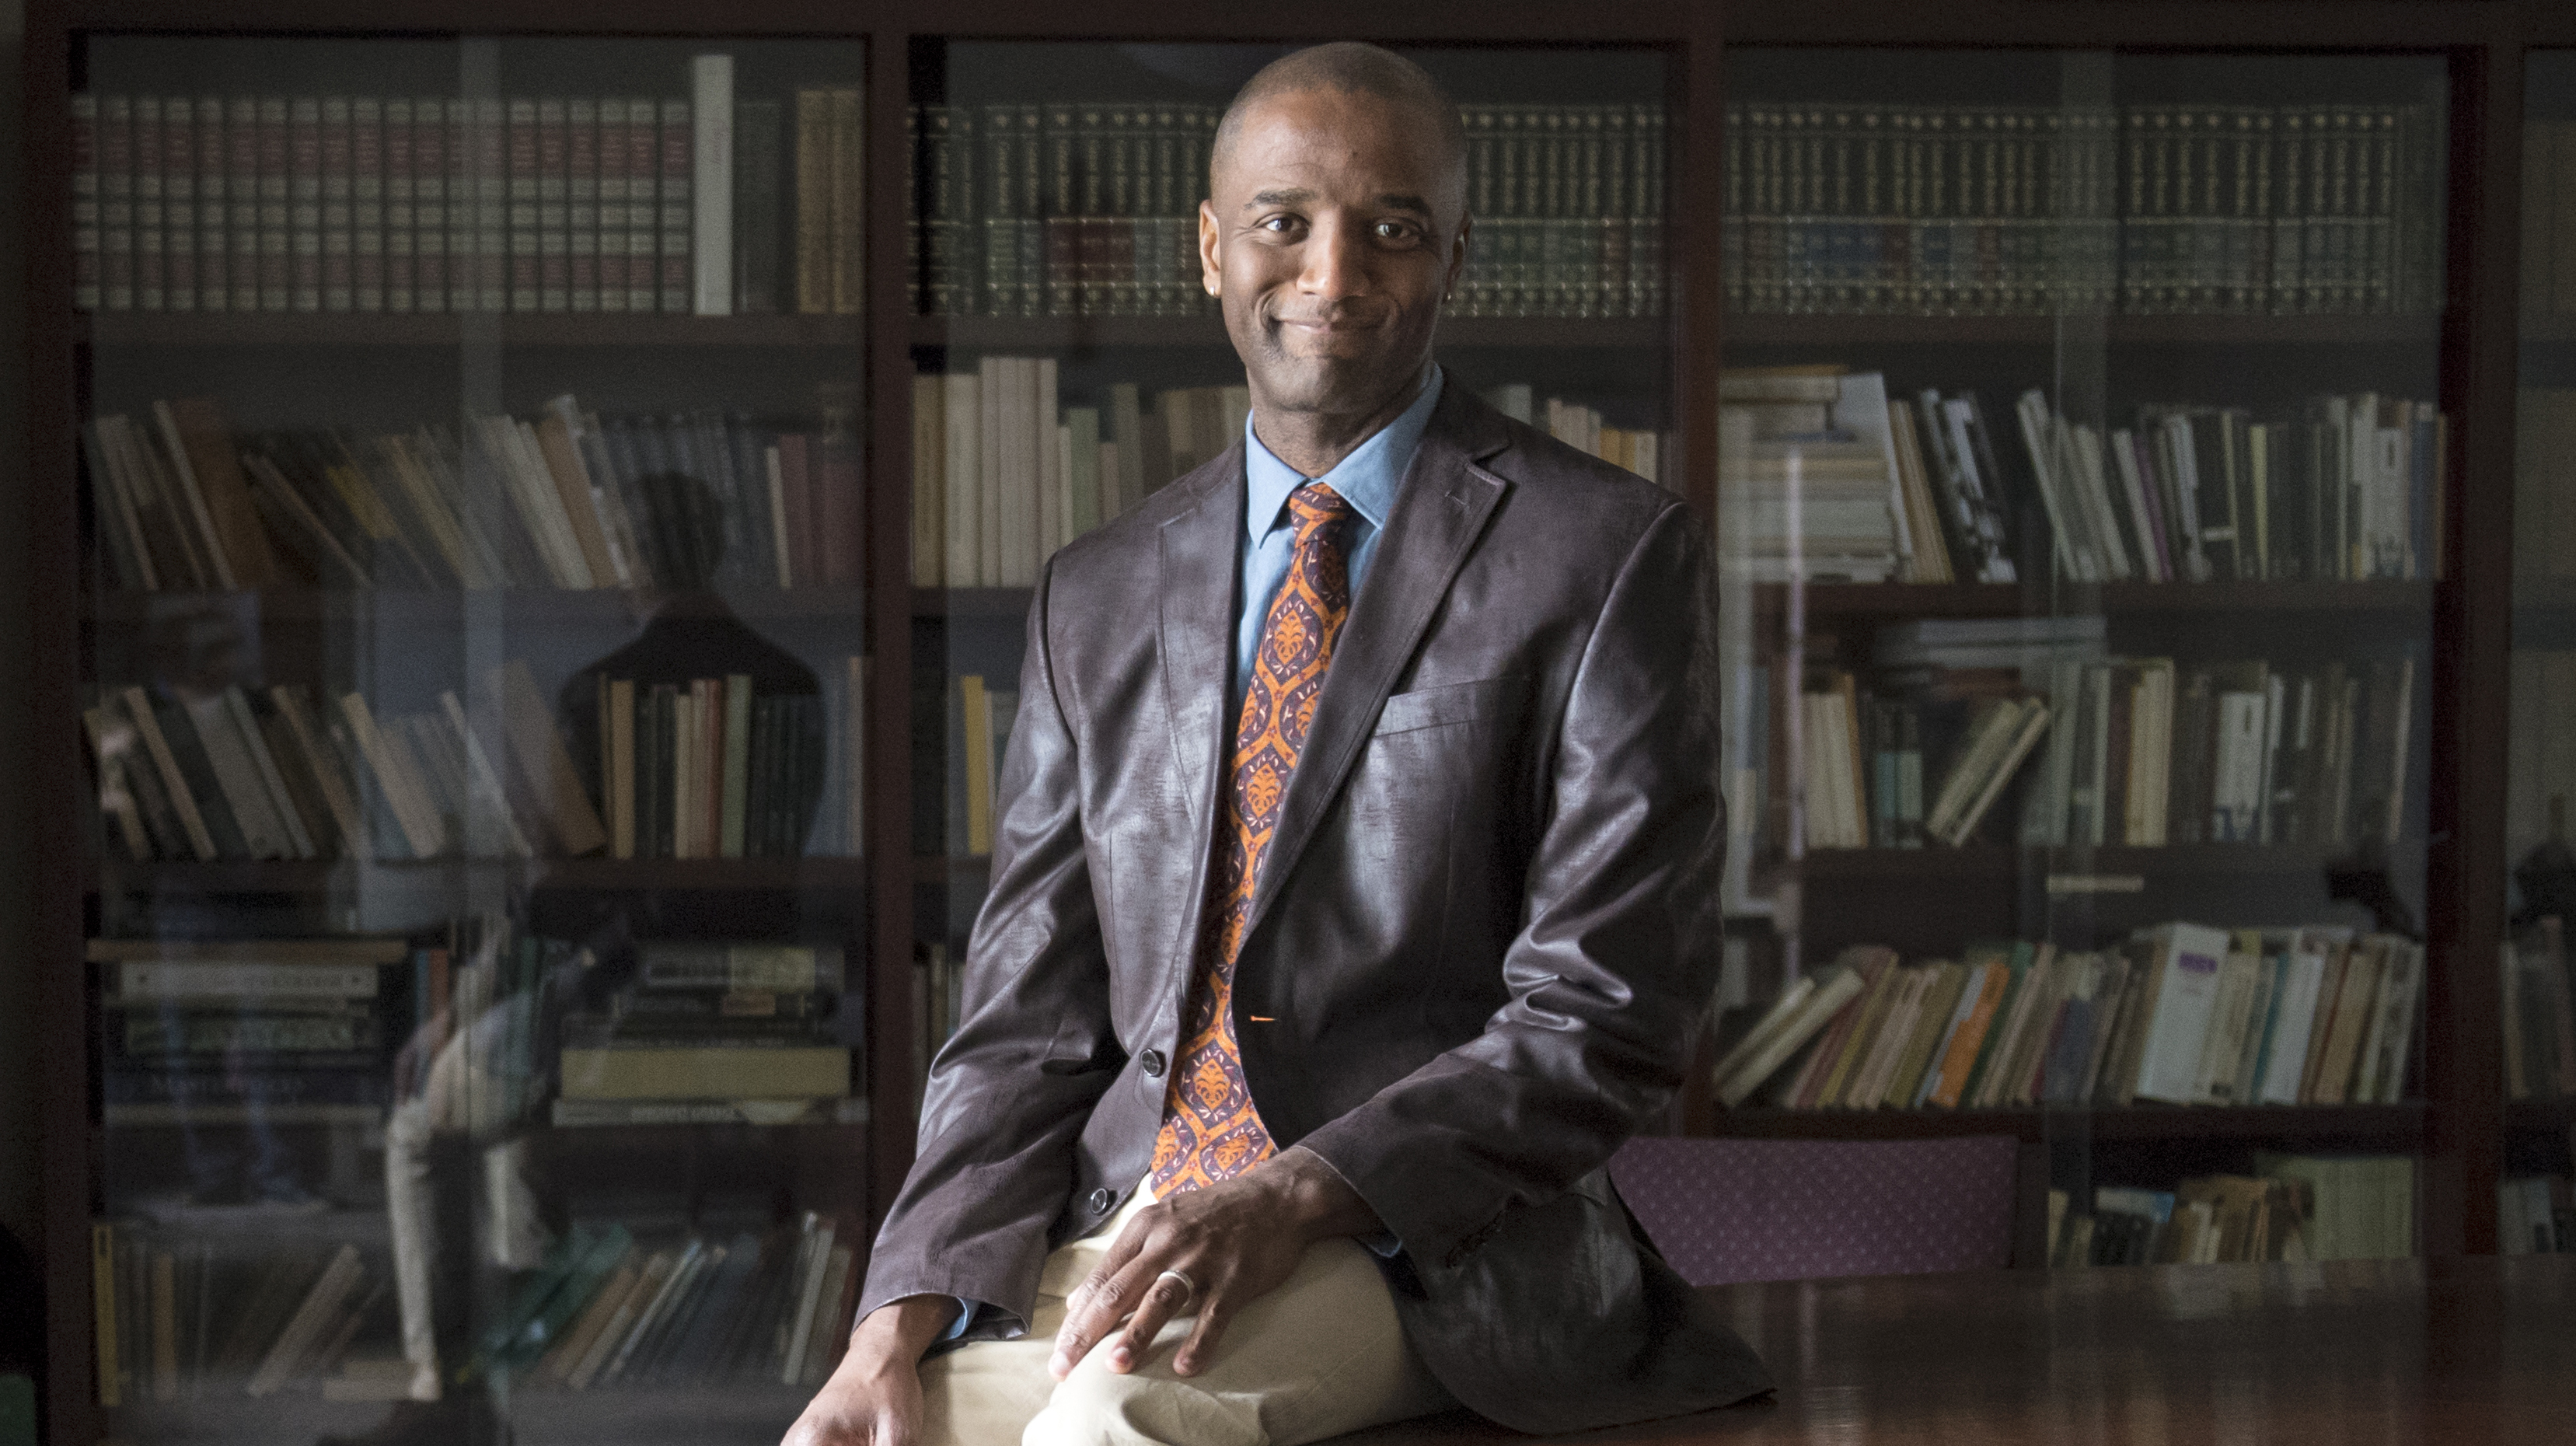 S. Marshall Perry, associate professor in the Kalmanovitz School of Education sitting on a table with books behind him.